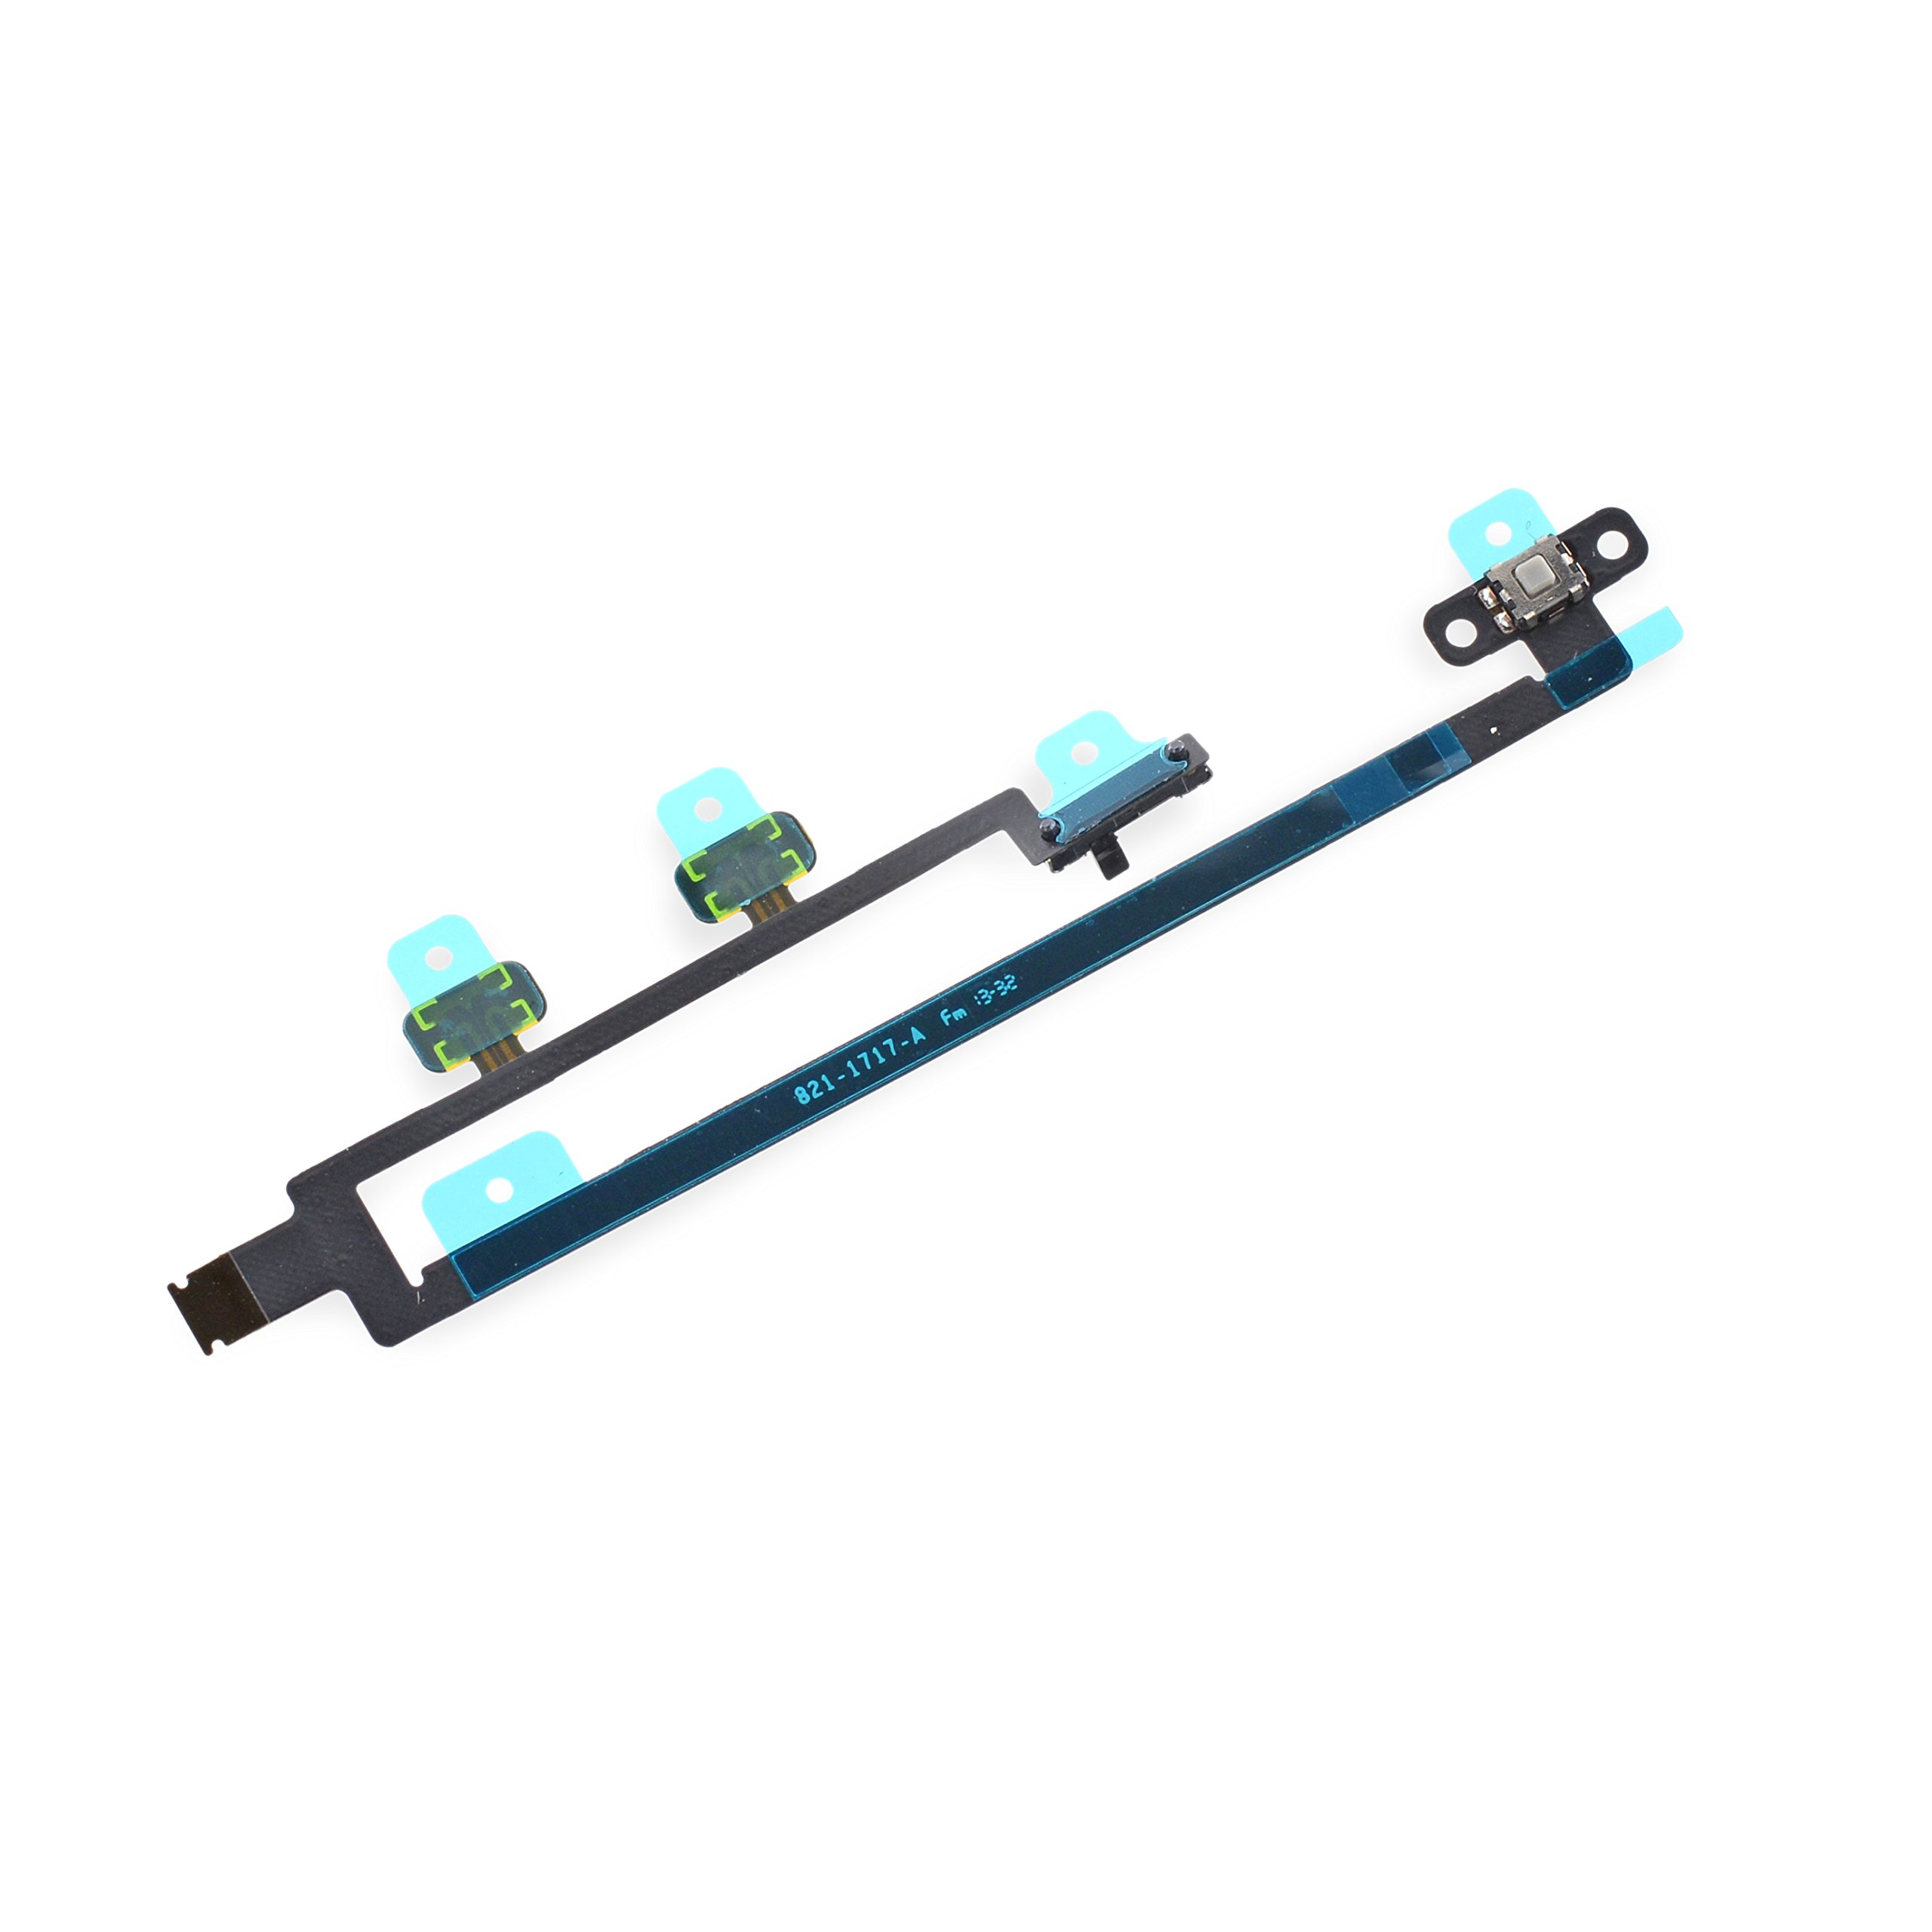 Volume and Power Button Cable Replacement for iPad Air and iPad Mini